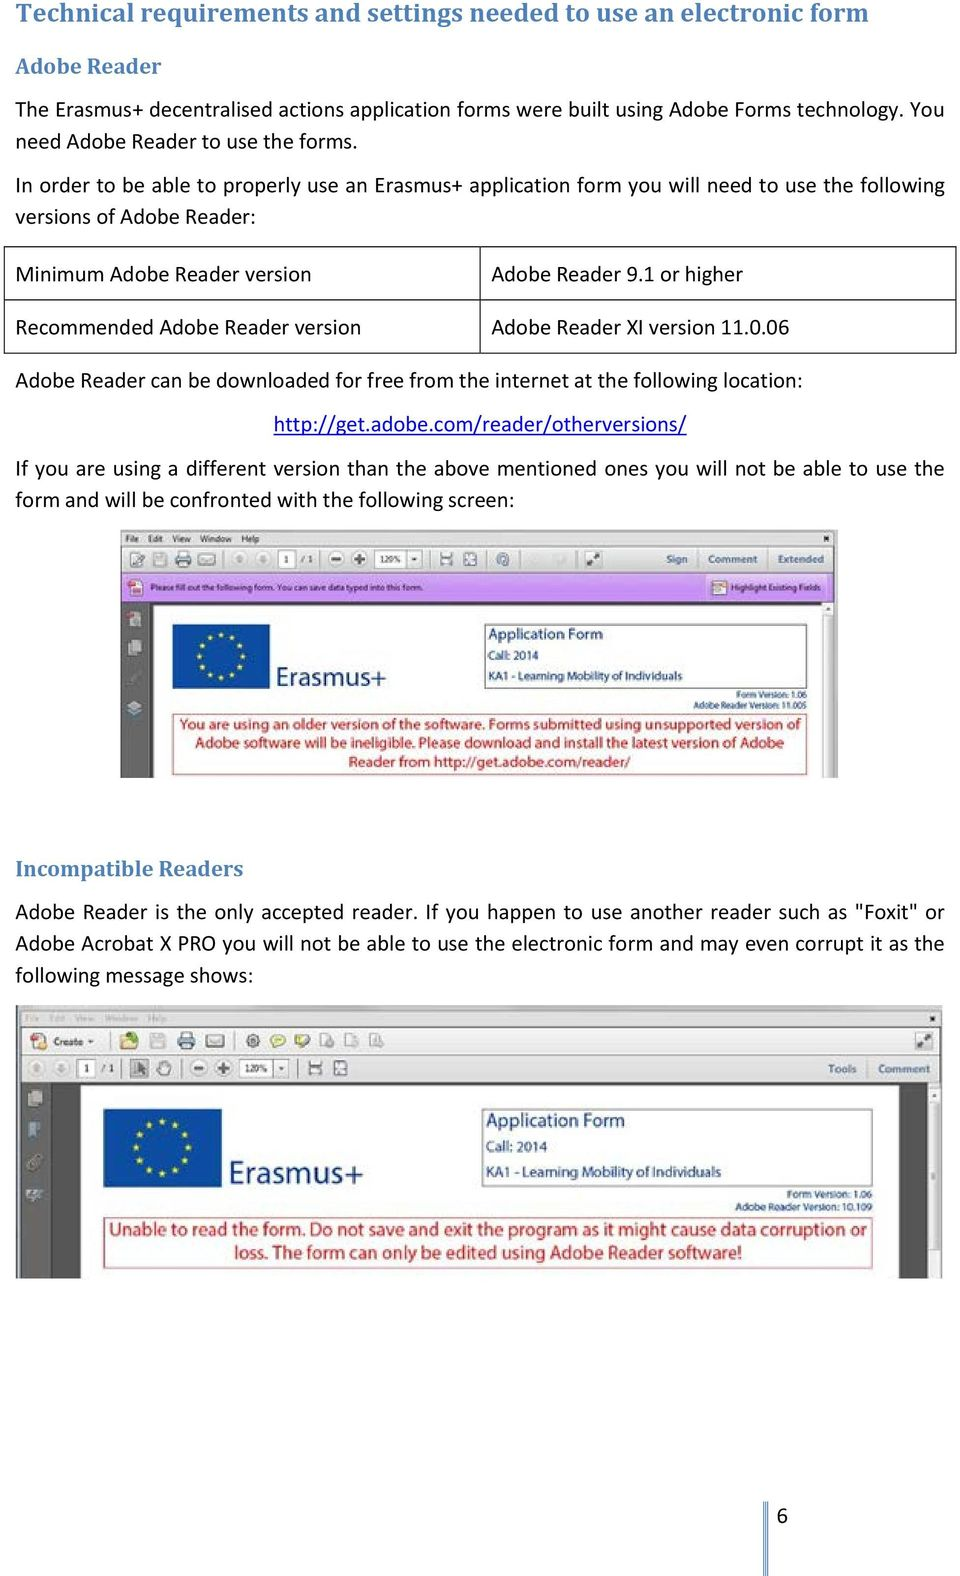 In order to be able to properly use an Erasmus+ application form you will need to use the following versions of Adobe Reader: Minimum Adobe Reader version Adobe Reader 9.